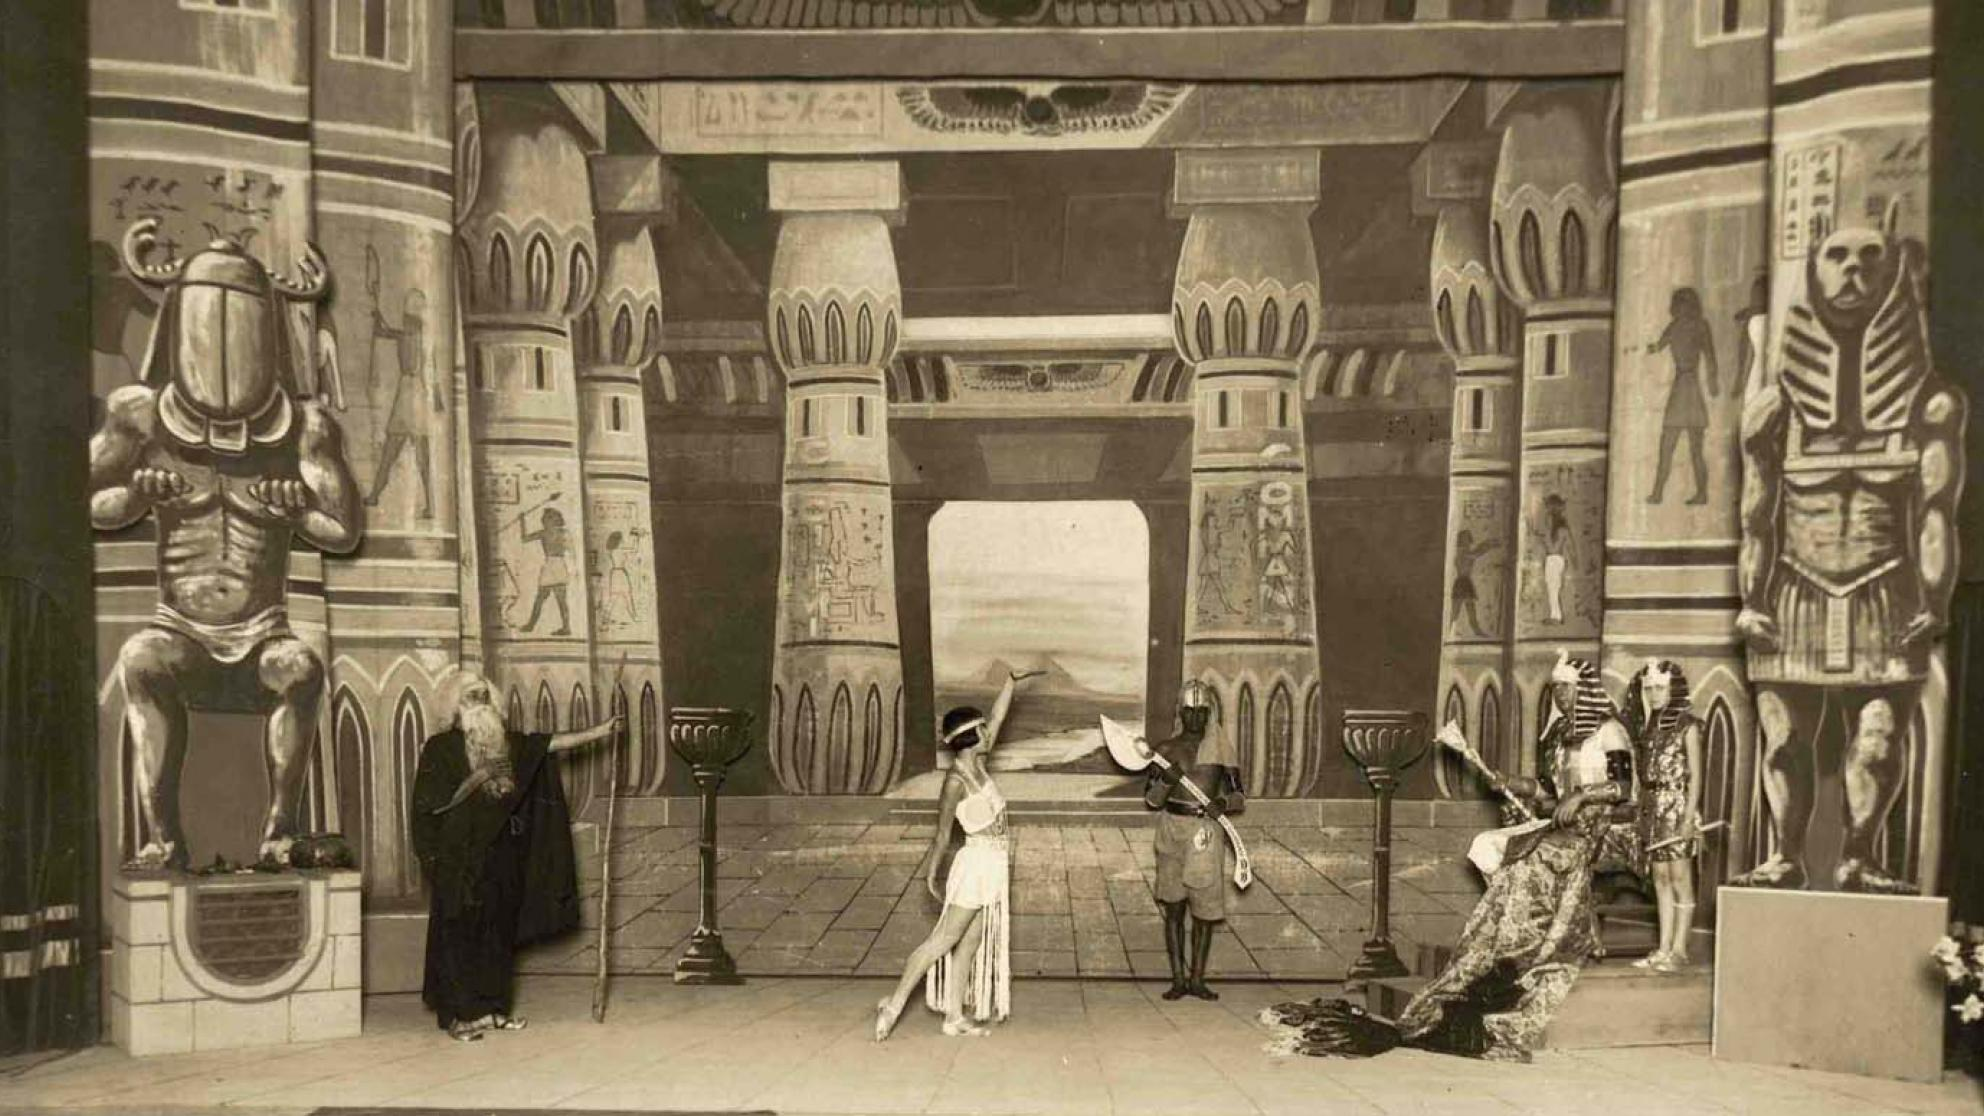 Cast members pose on stage during a prologue to a 1925 screening of The Ten Commandments in Queensland